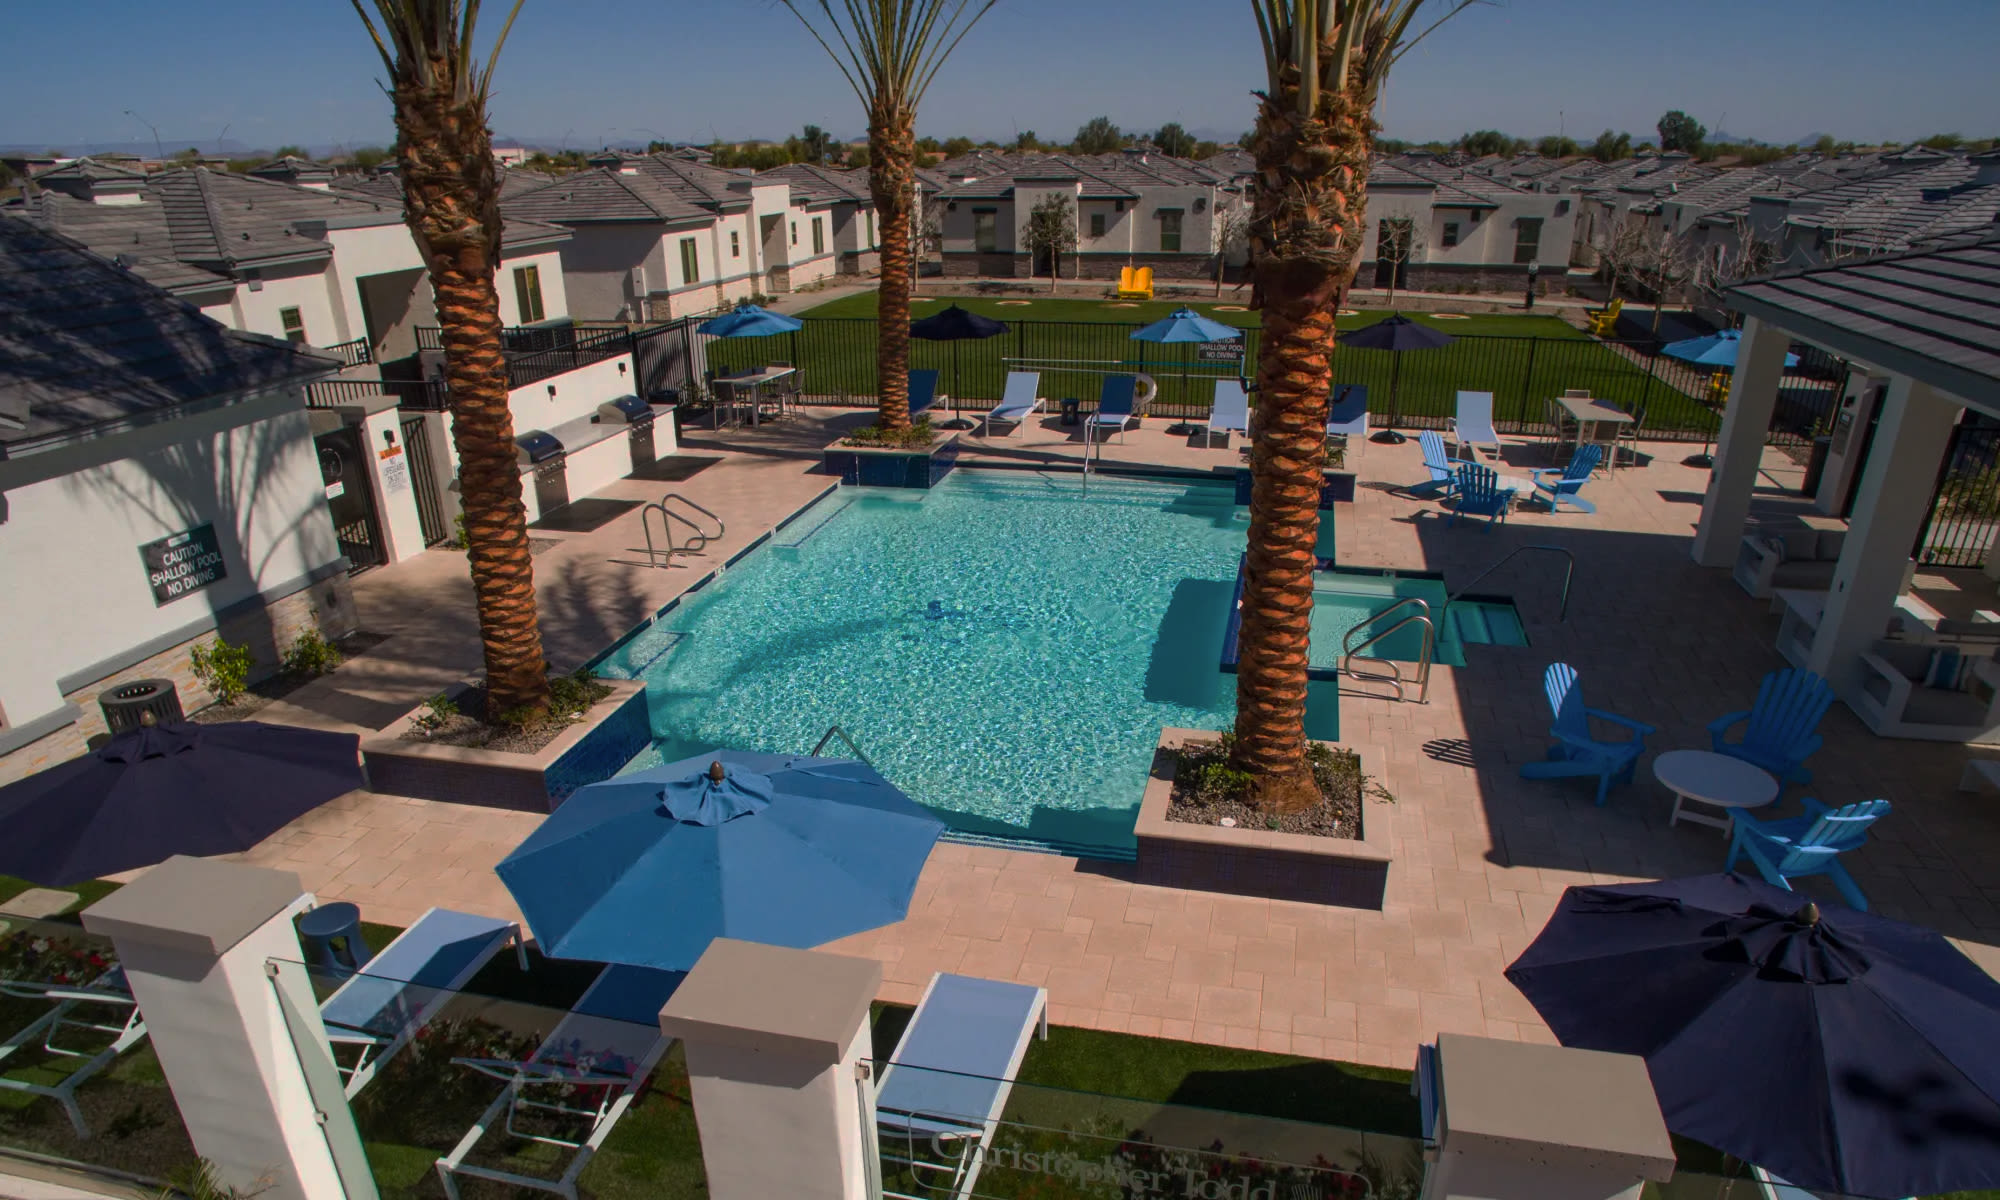 Apartments in Surprise, Arizona at Christopher Todd Communities on Greenway